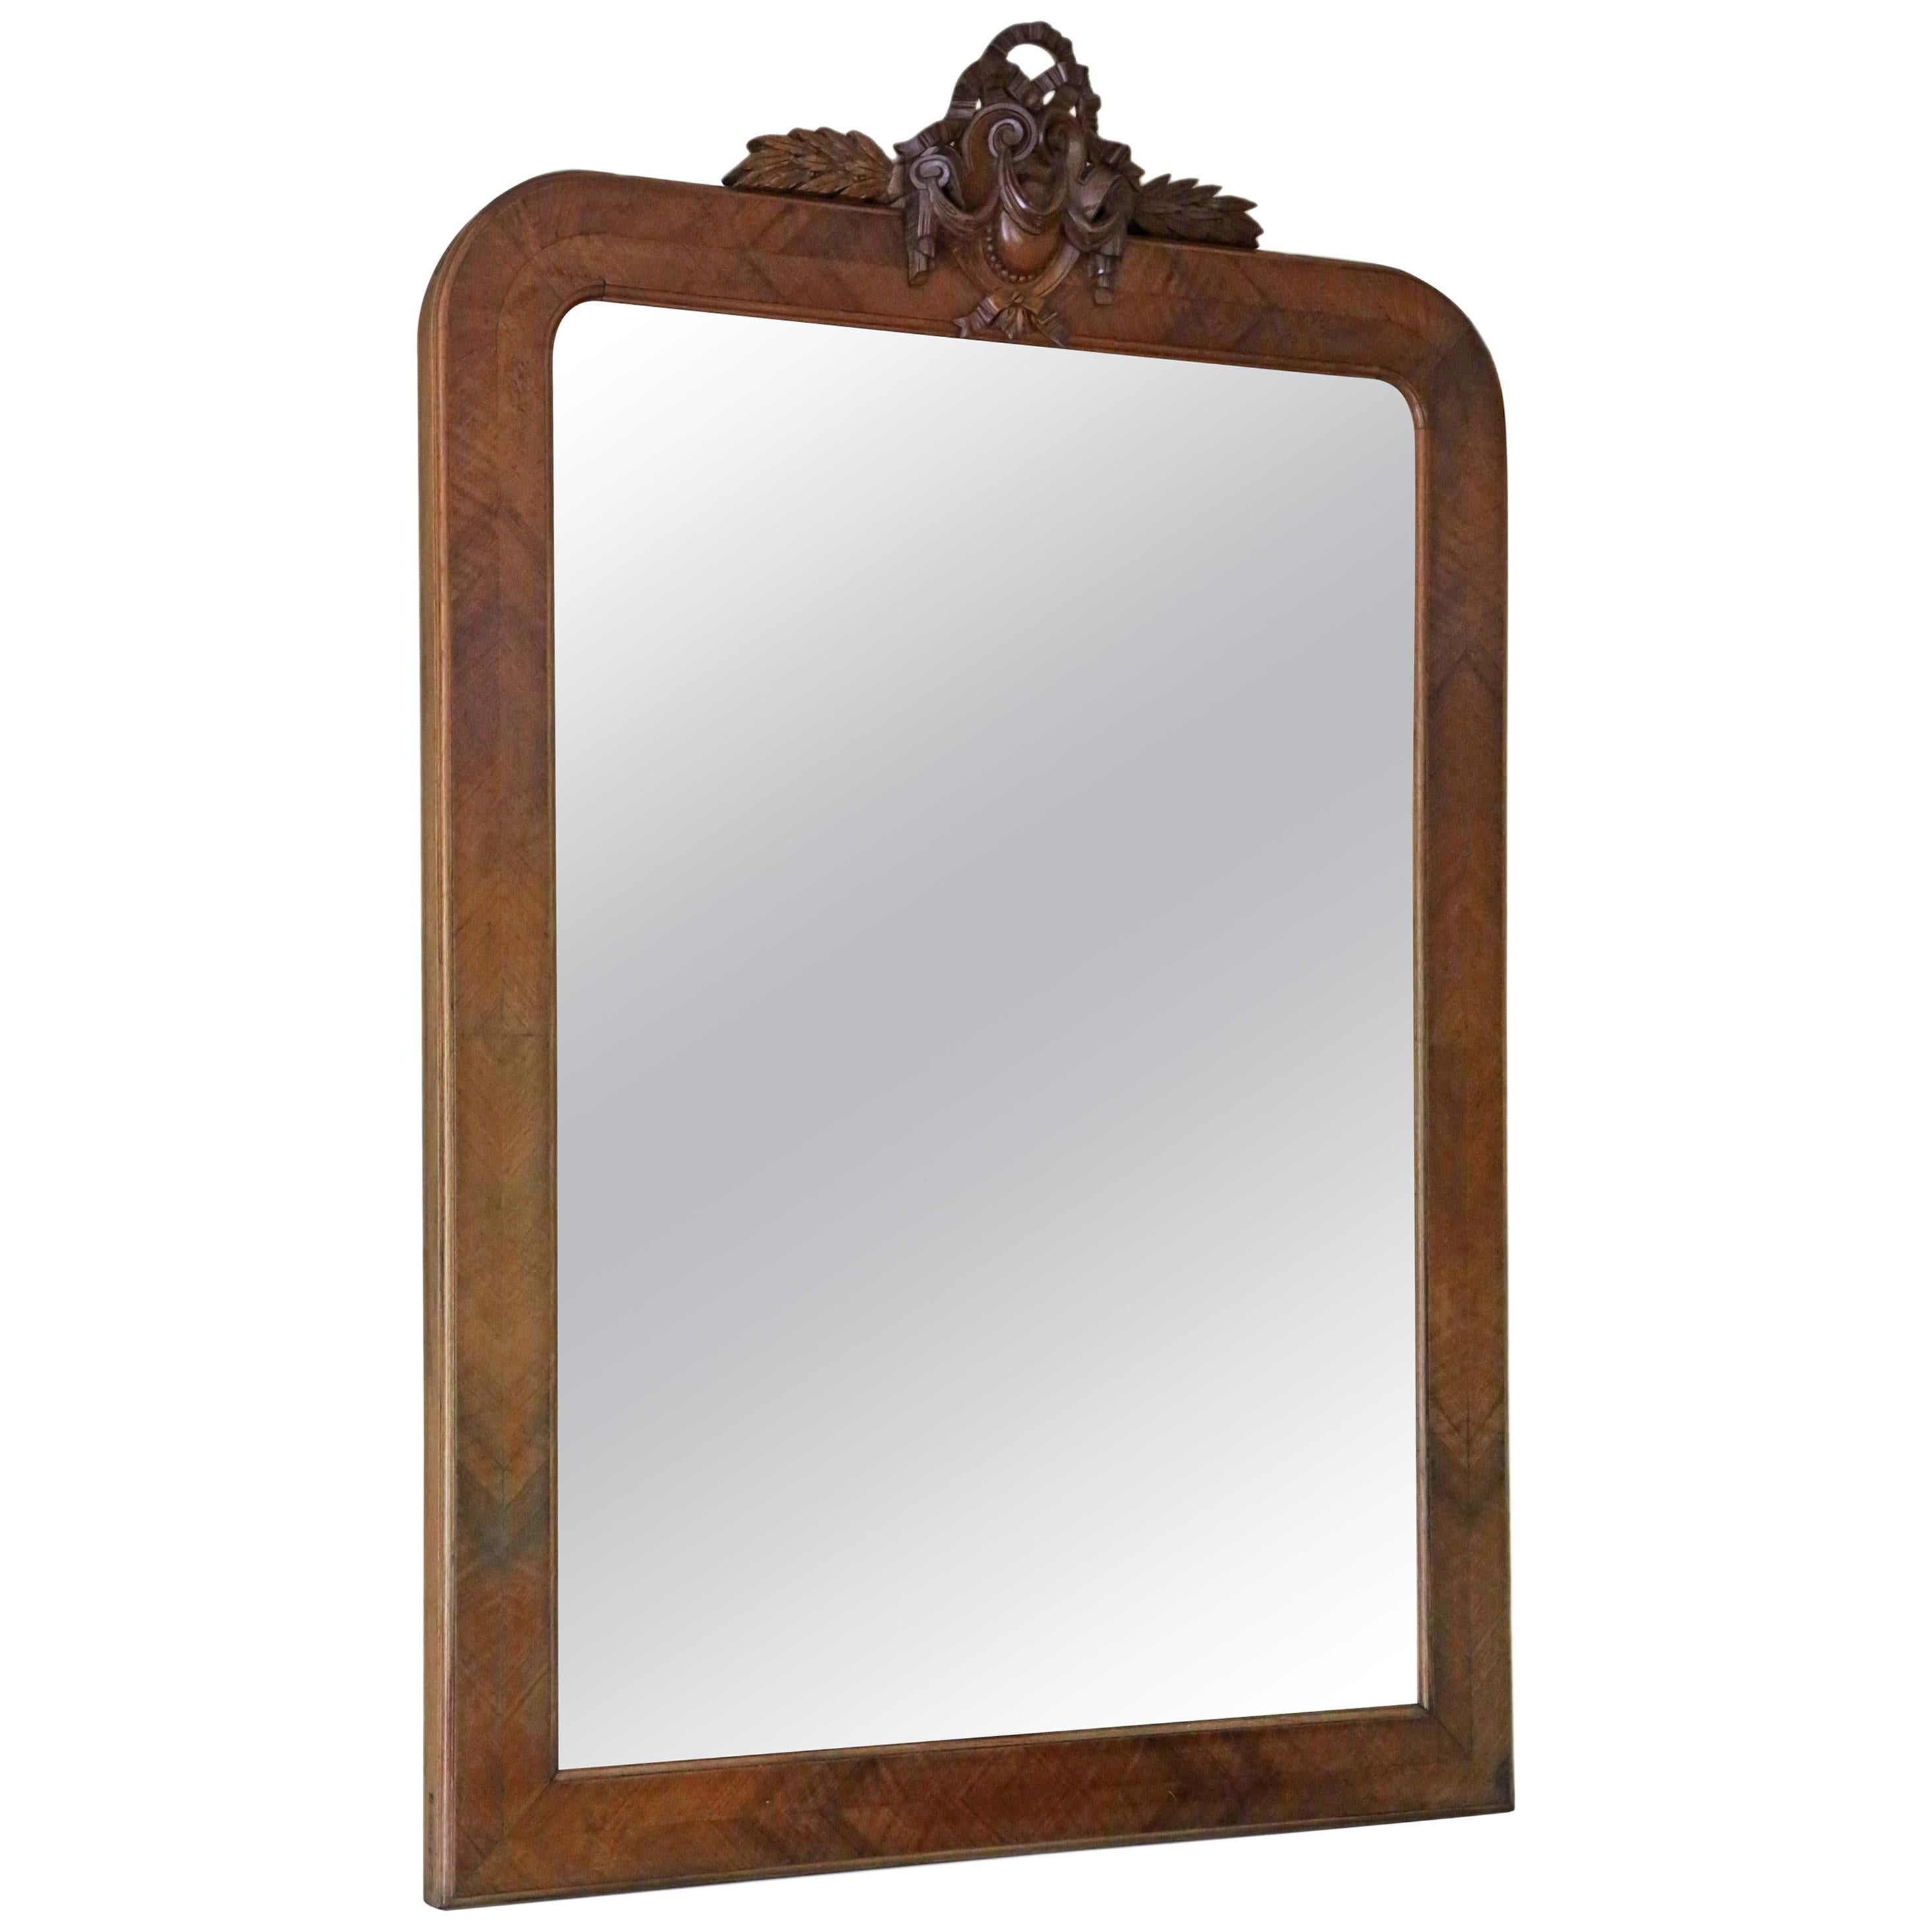 Antique Large Walnut Overmantle Wall Mirror, circa 1900